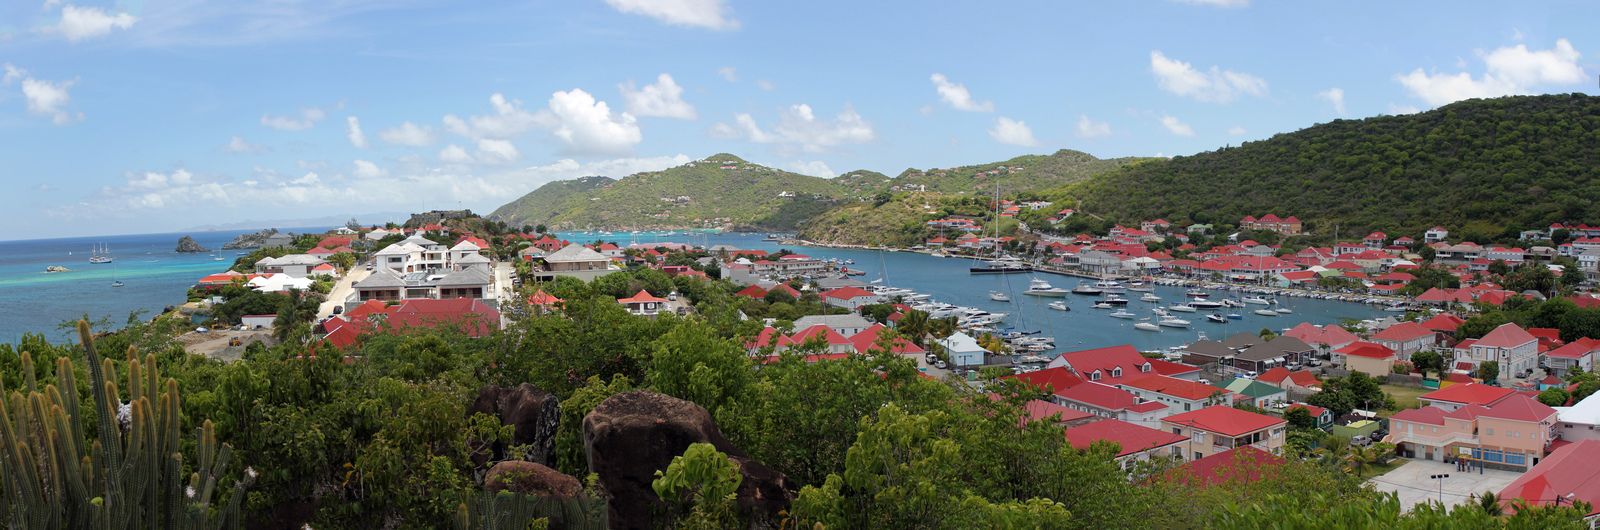 saint barthelemy city header